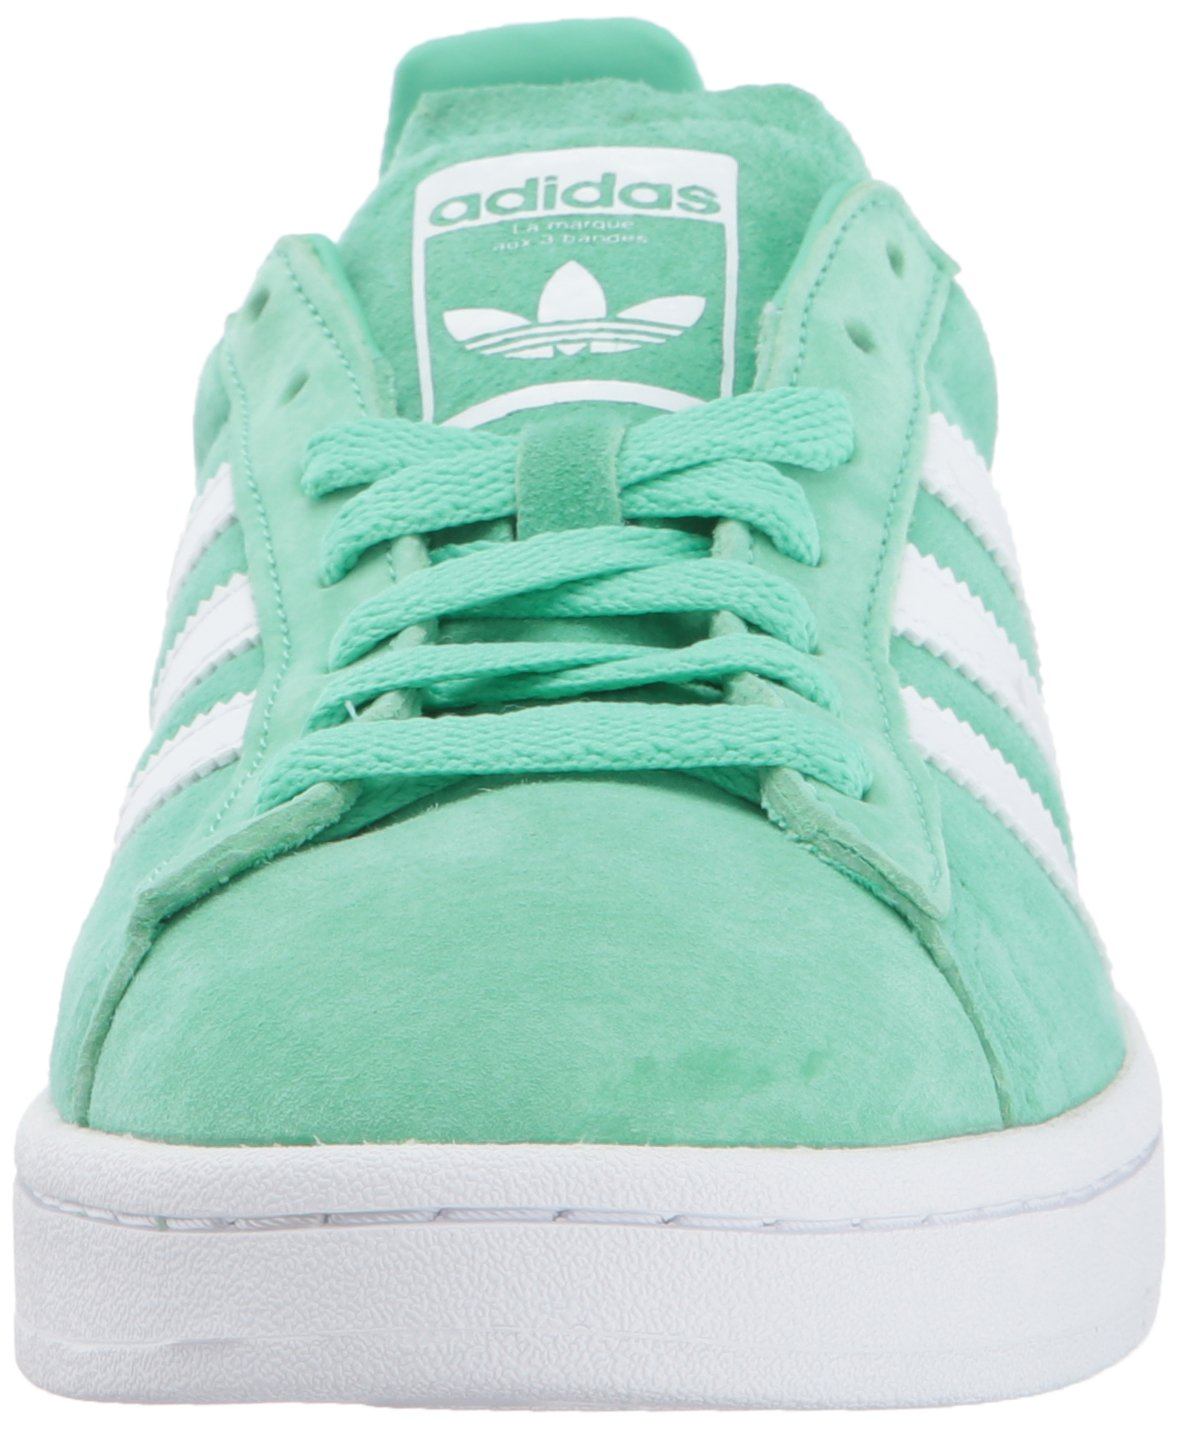 adidas Originals Men's Campus Sneakers -, Green Glow Crystal White, (11 M US) by adidas Originals (Image #4)